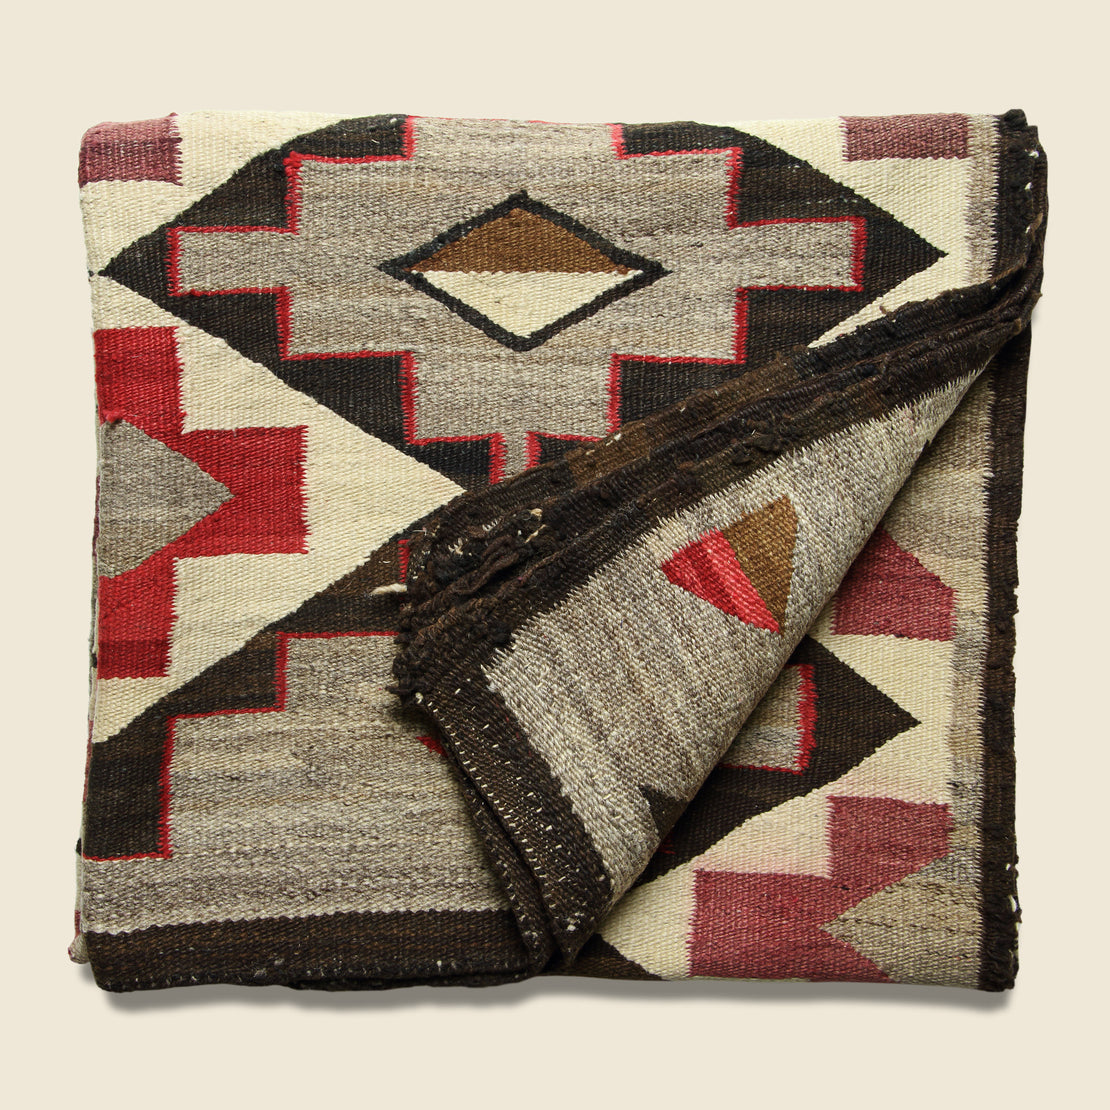 Hand Woven Navajo Rug - Red Center Cross Design - Vintage - STAG Provisions - One & Done - Rug